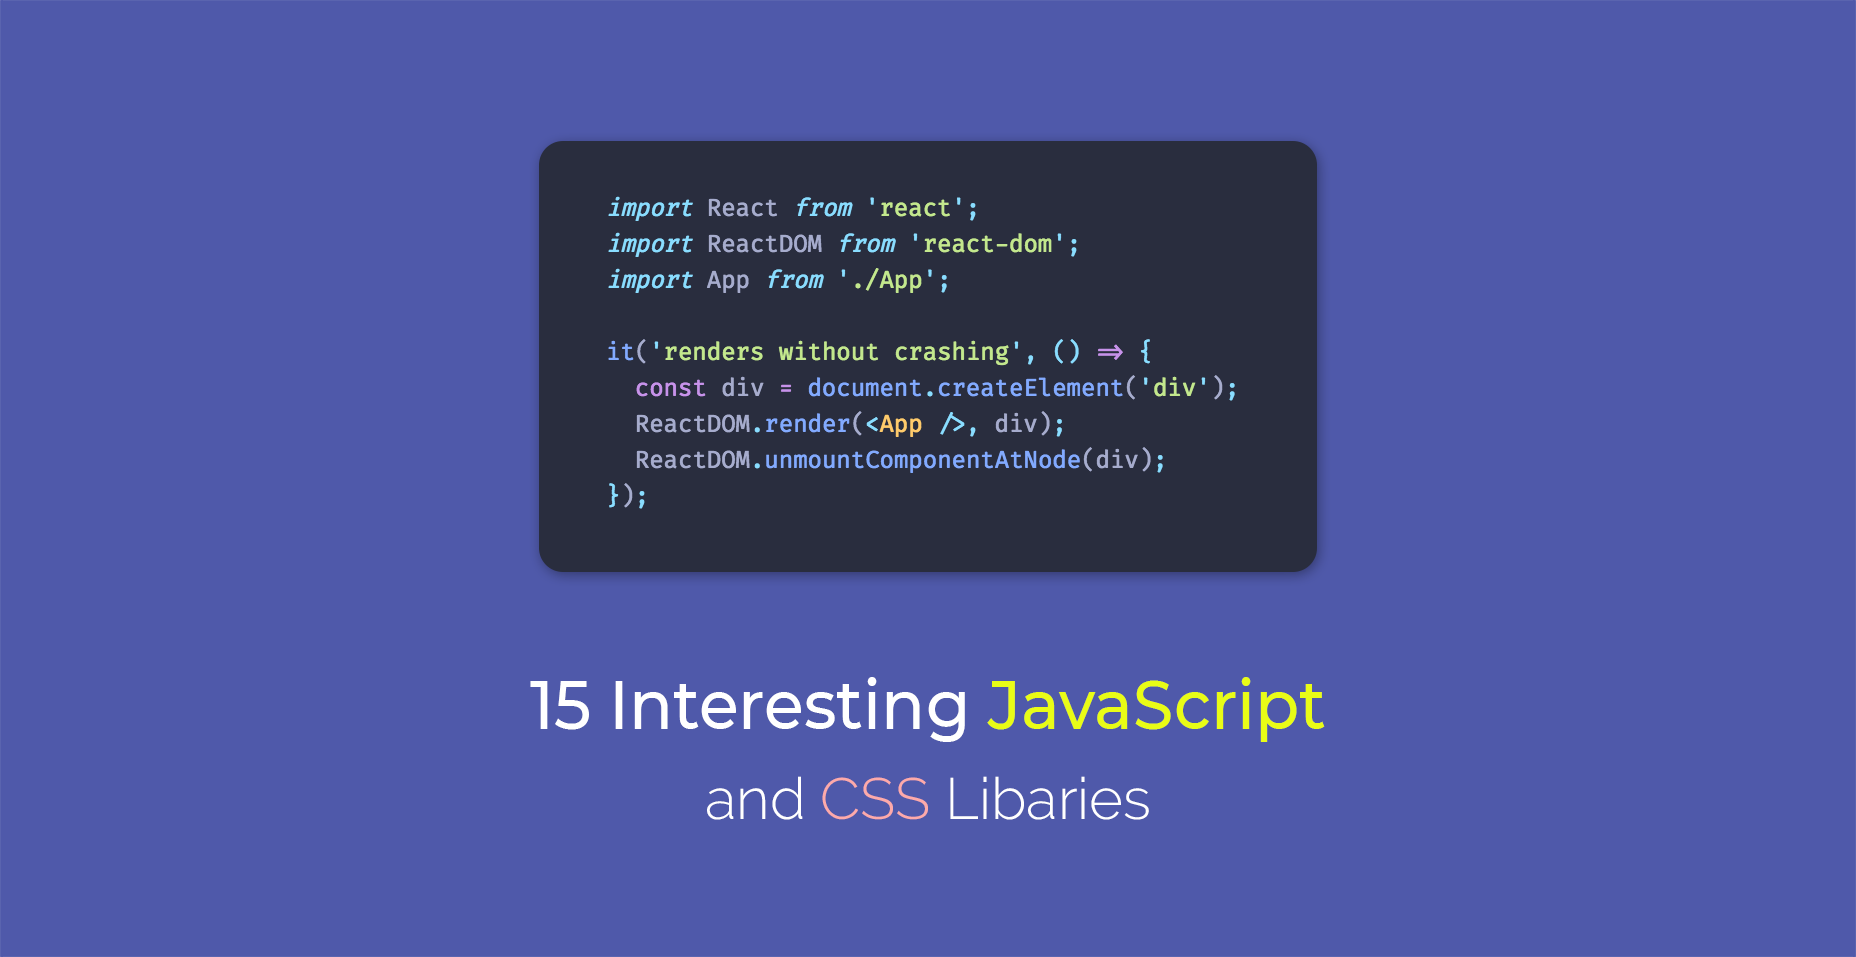 15 Interesting JavaScript and CSS Libraries for March 2018